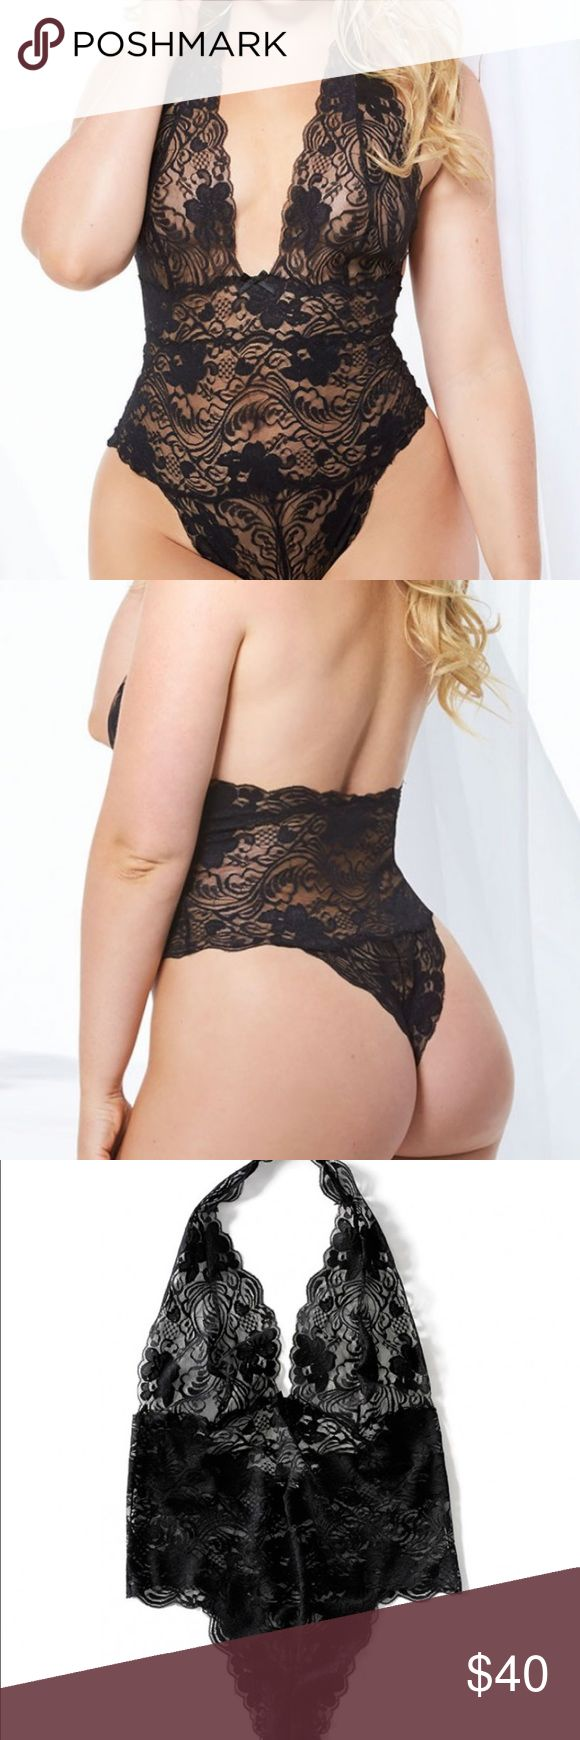 Plus size lingerie bodysuit This bodysuit is so comfortable and sexy. Never worn. Black lace. Stretchy size it says 3x but fits like a size 18 Intimates & Sleepwear Chemises & Slips